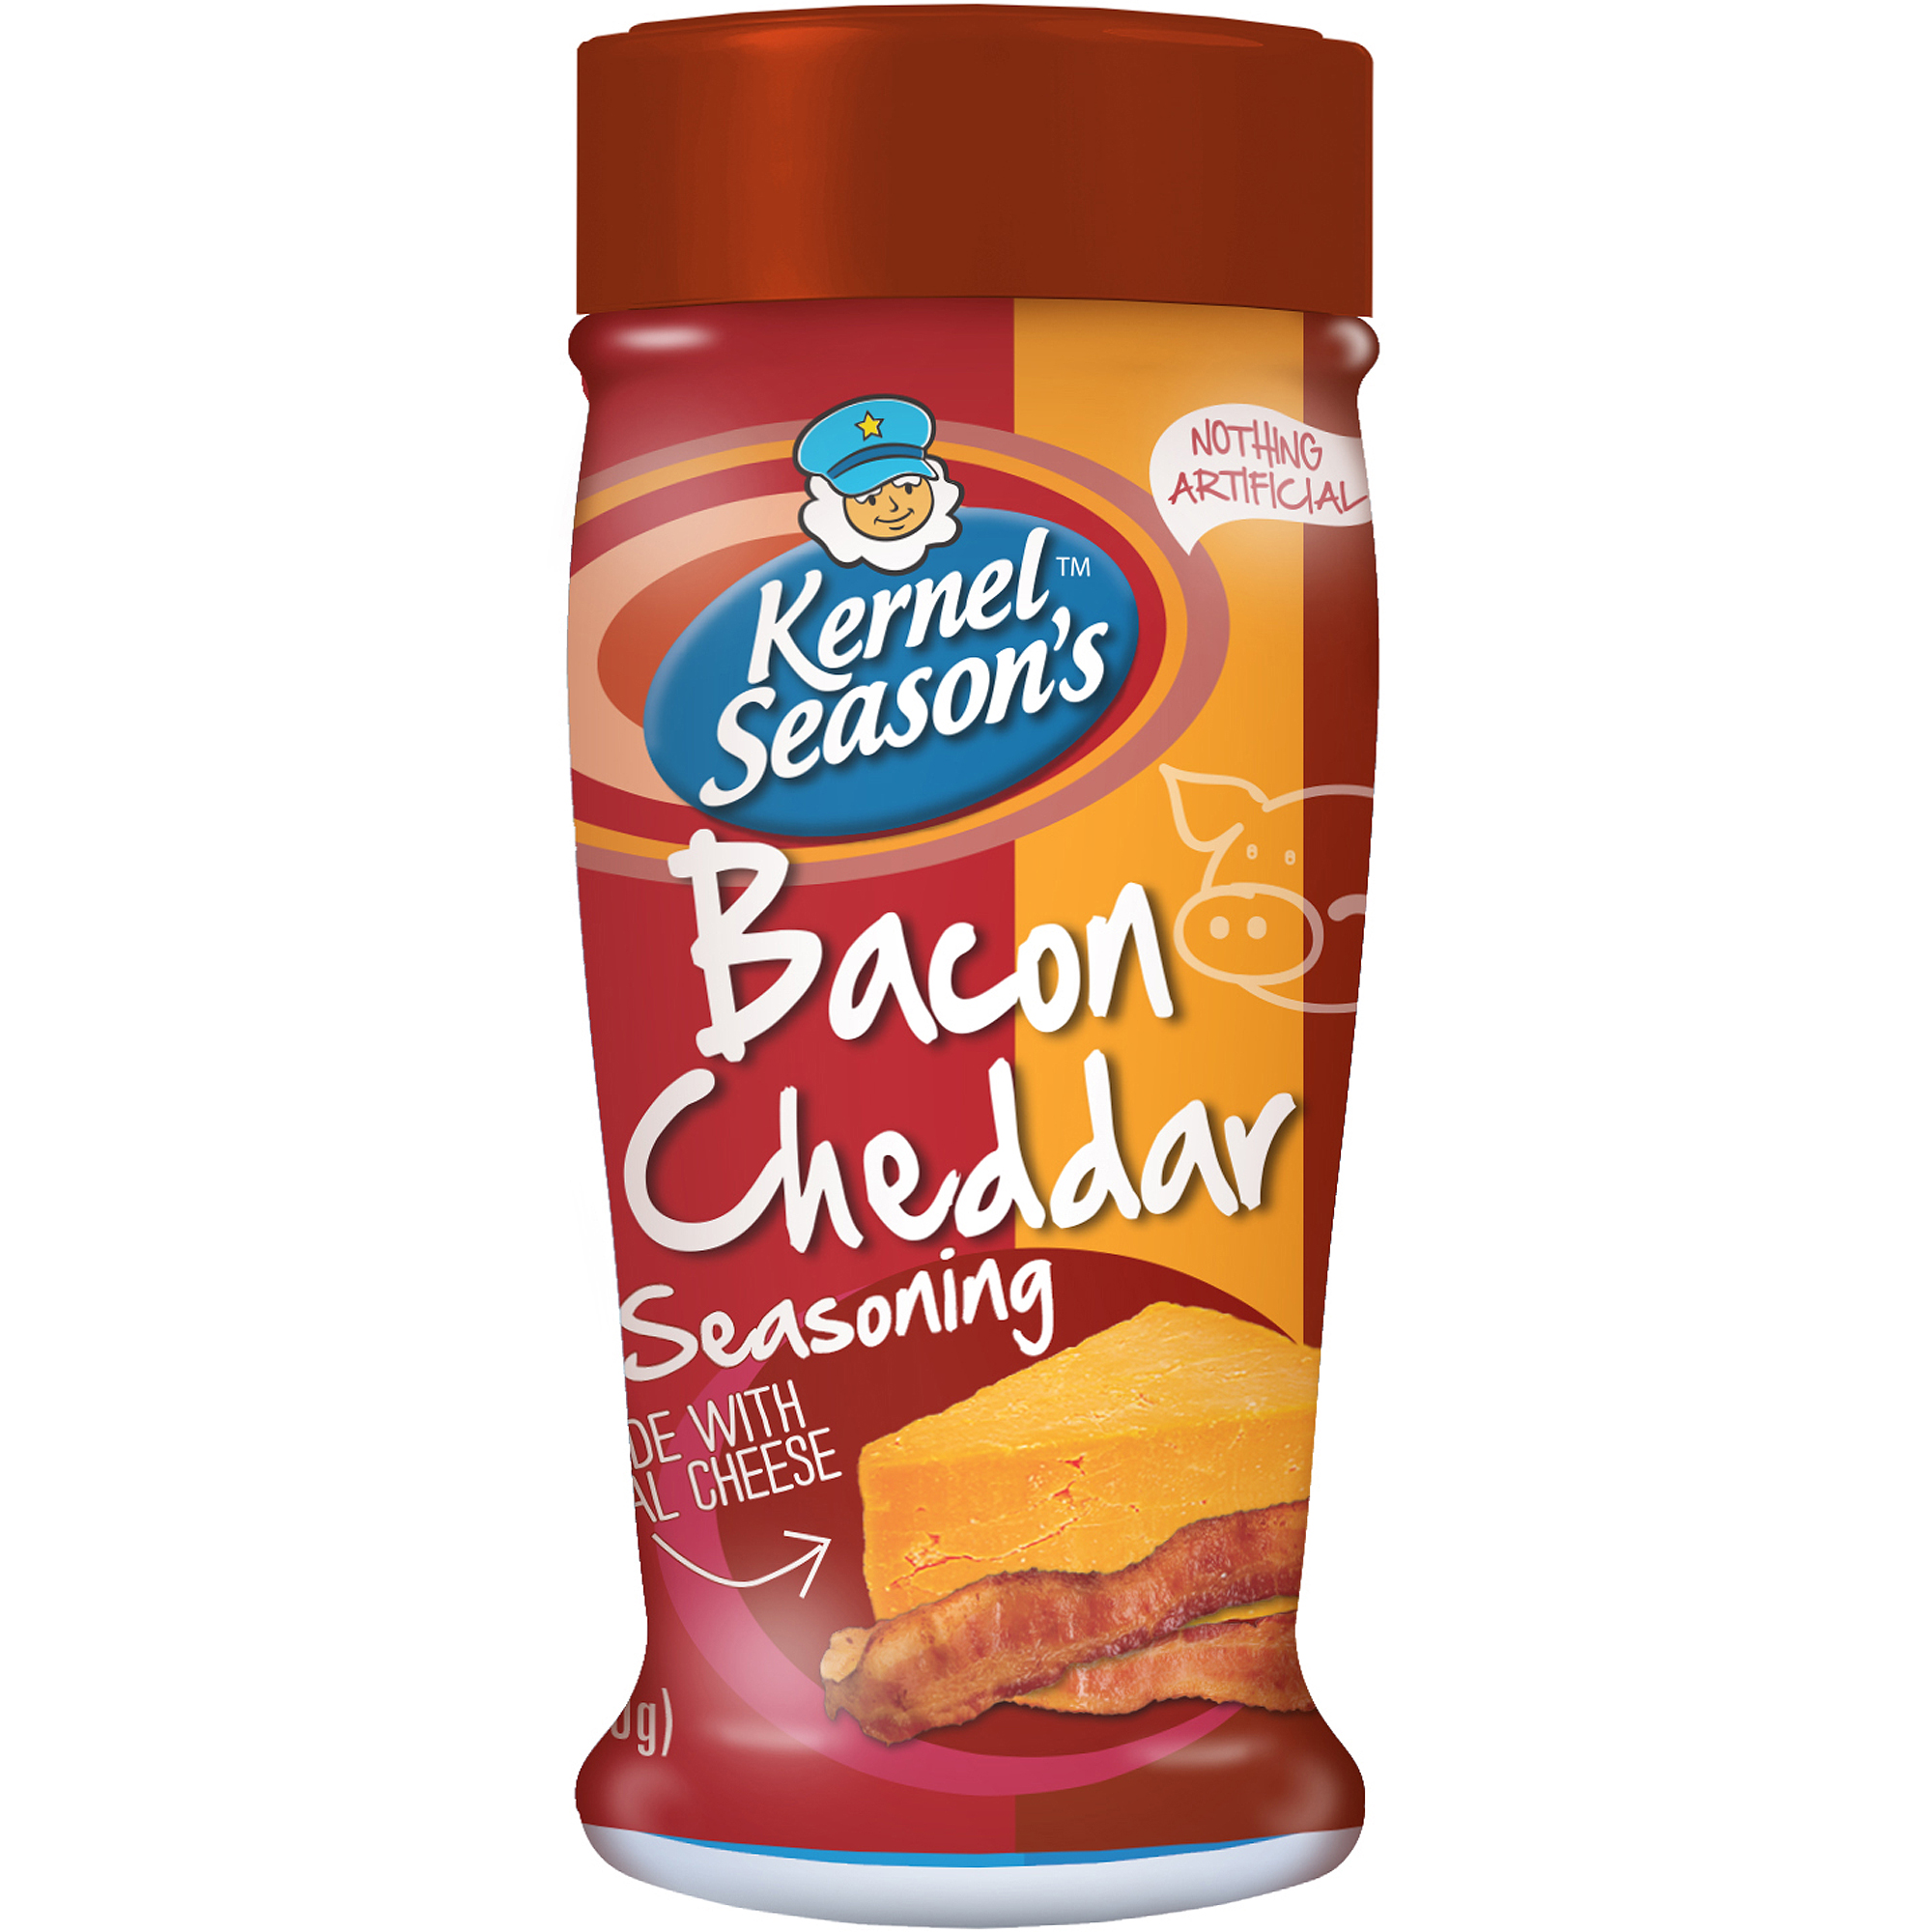 Kernel Season's Bacon Cheddar Seasoning, 2.85 oz